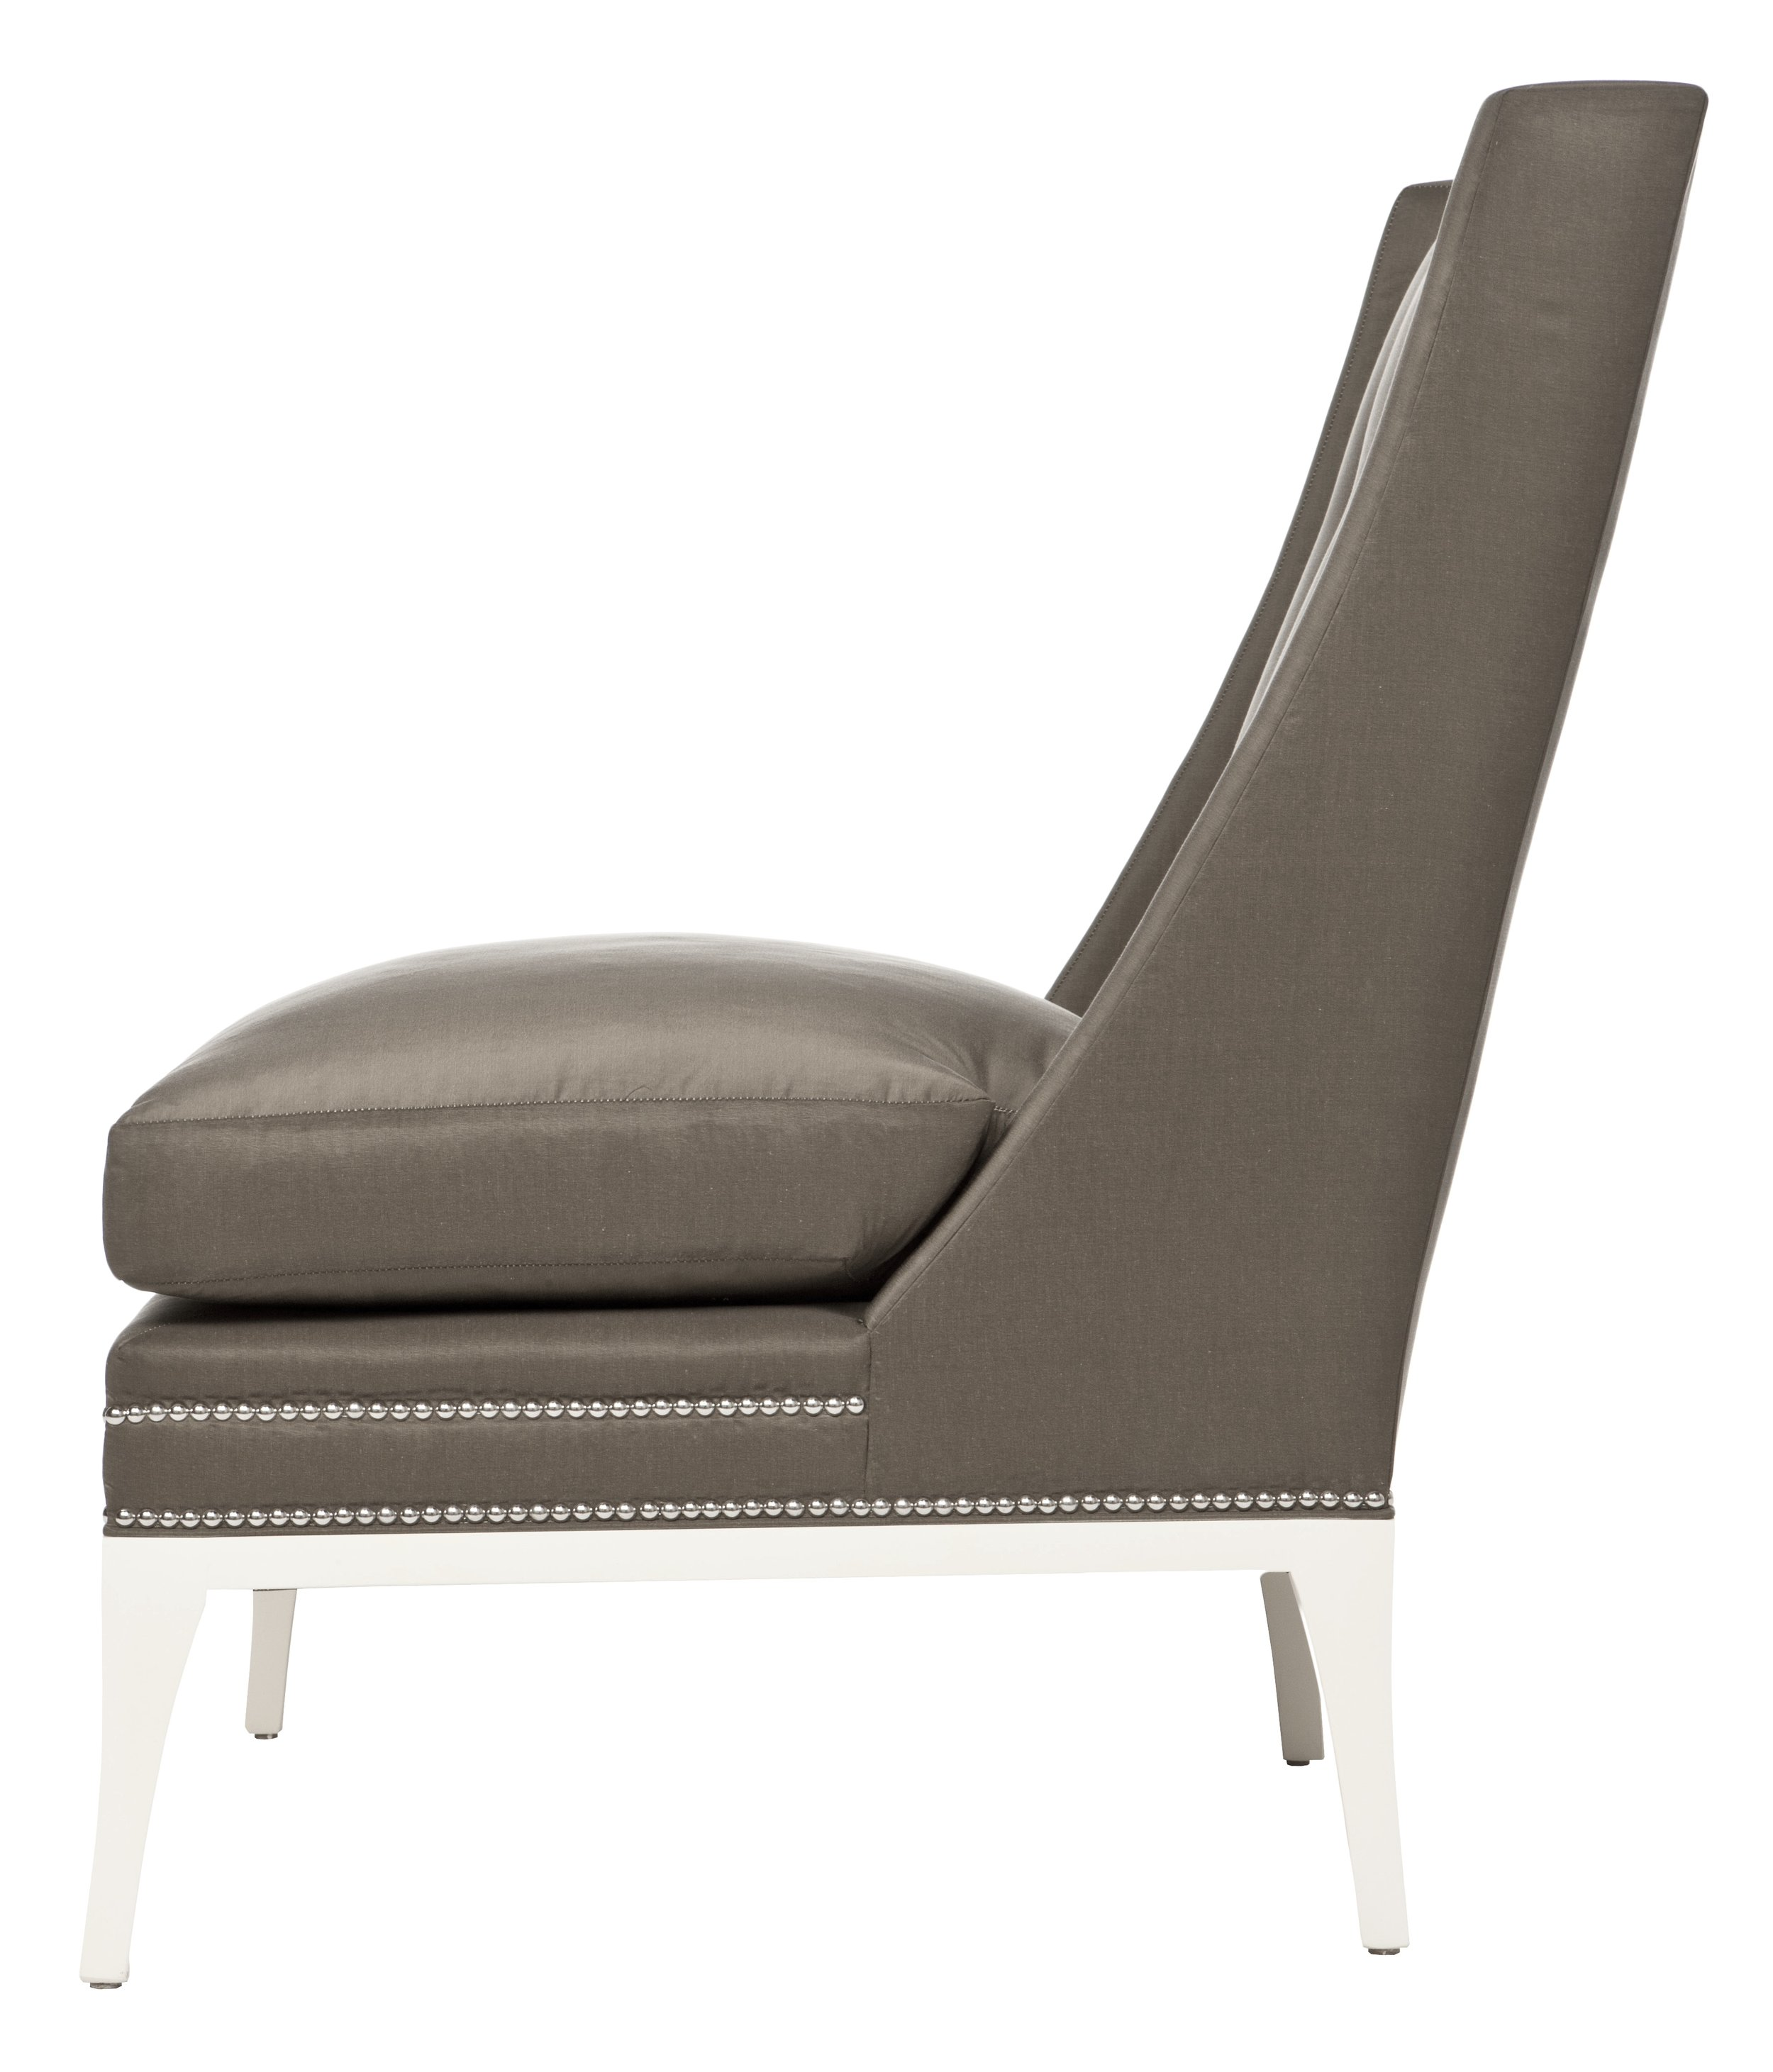 STANLY CHAIR SIDE.jpg